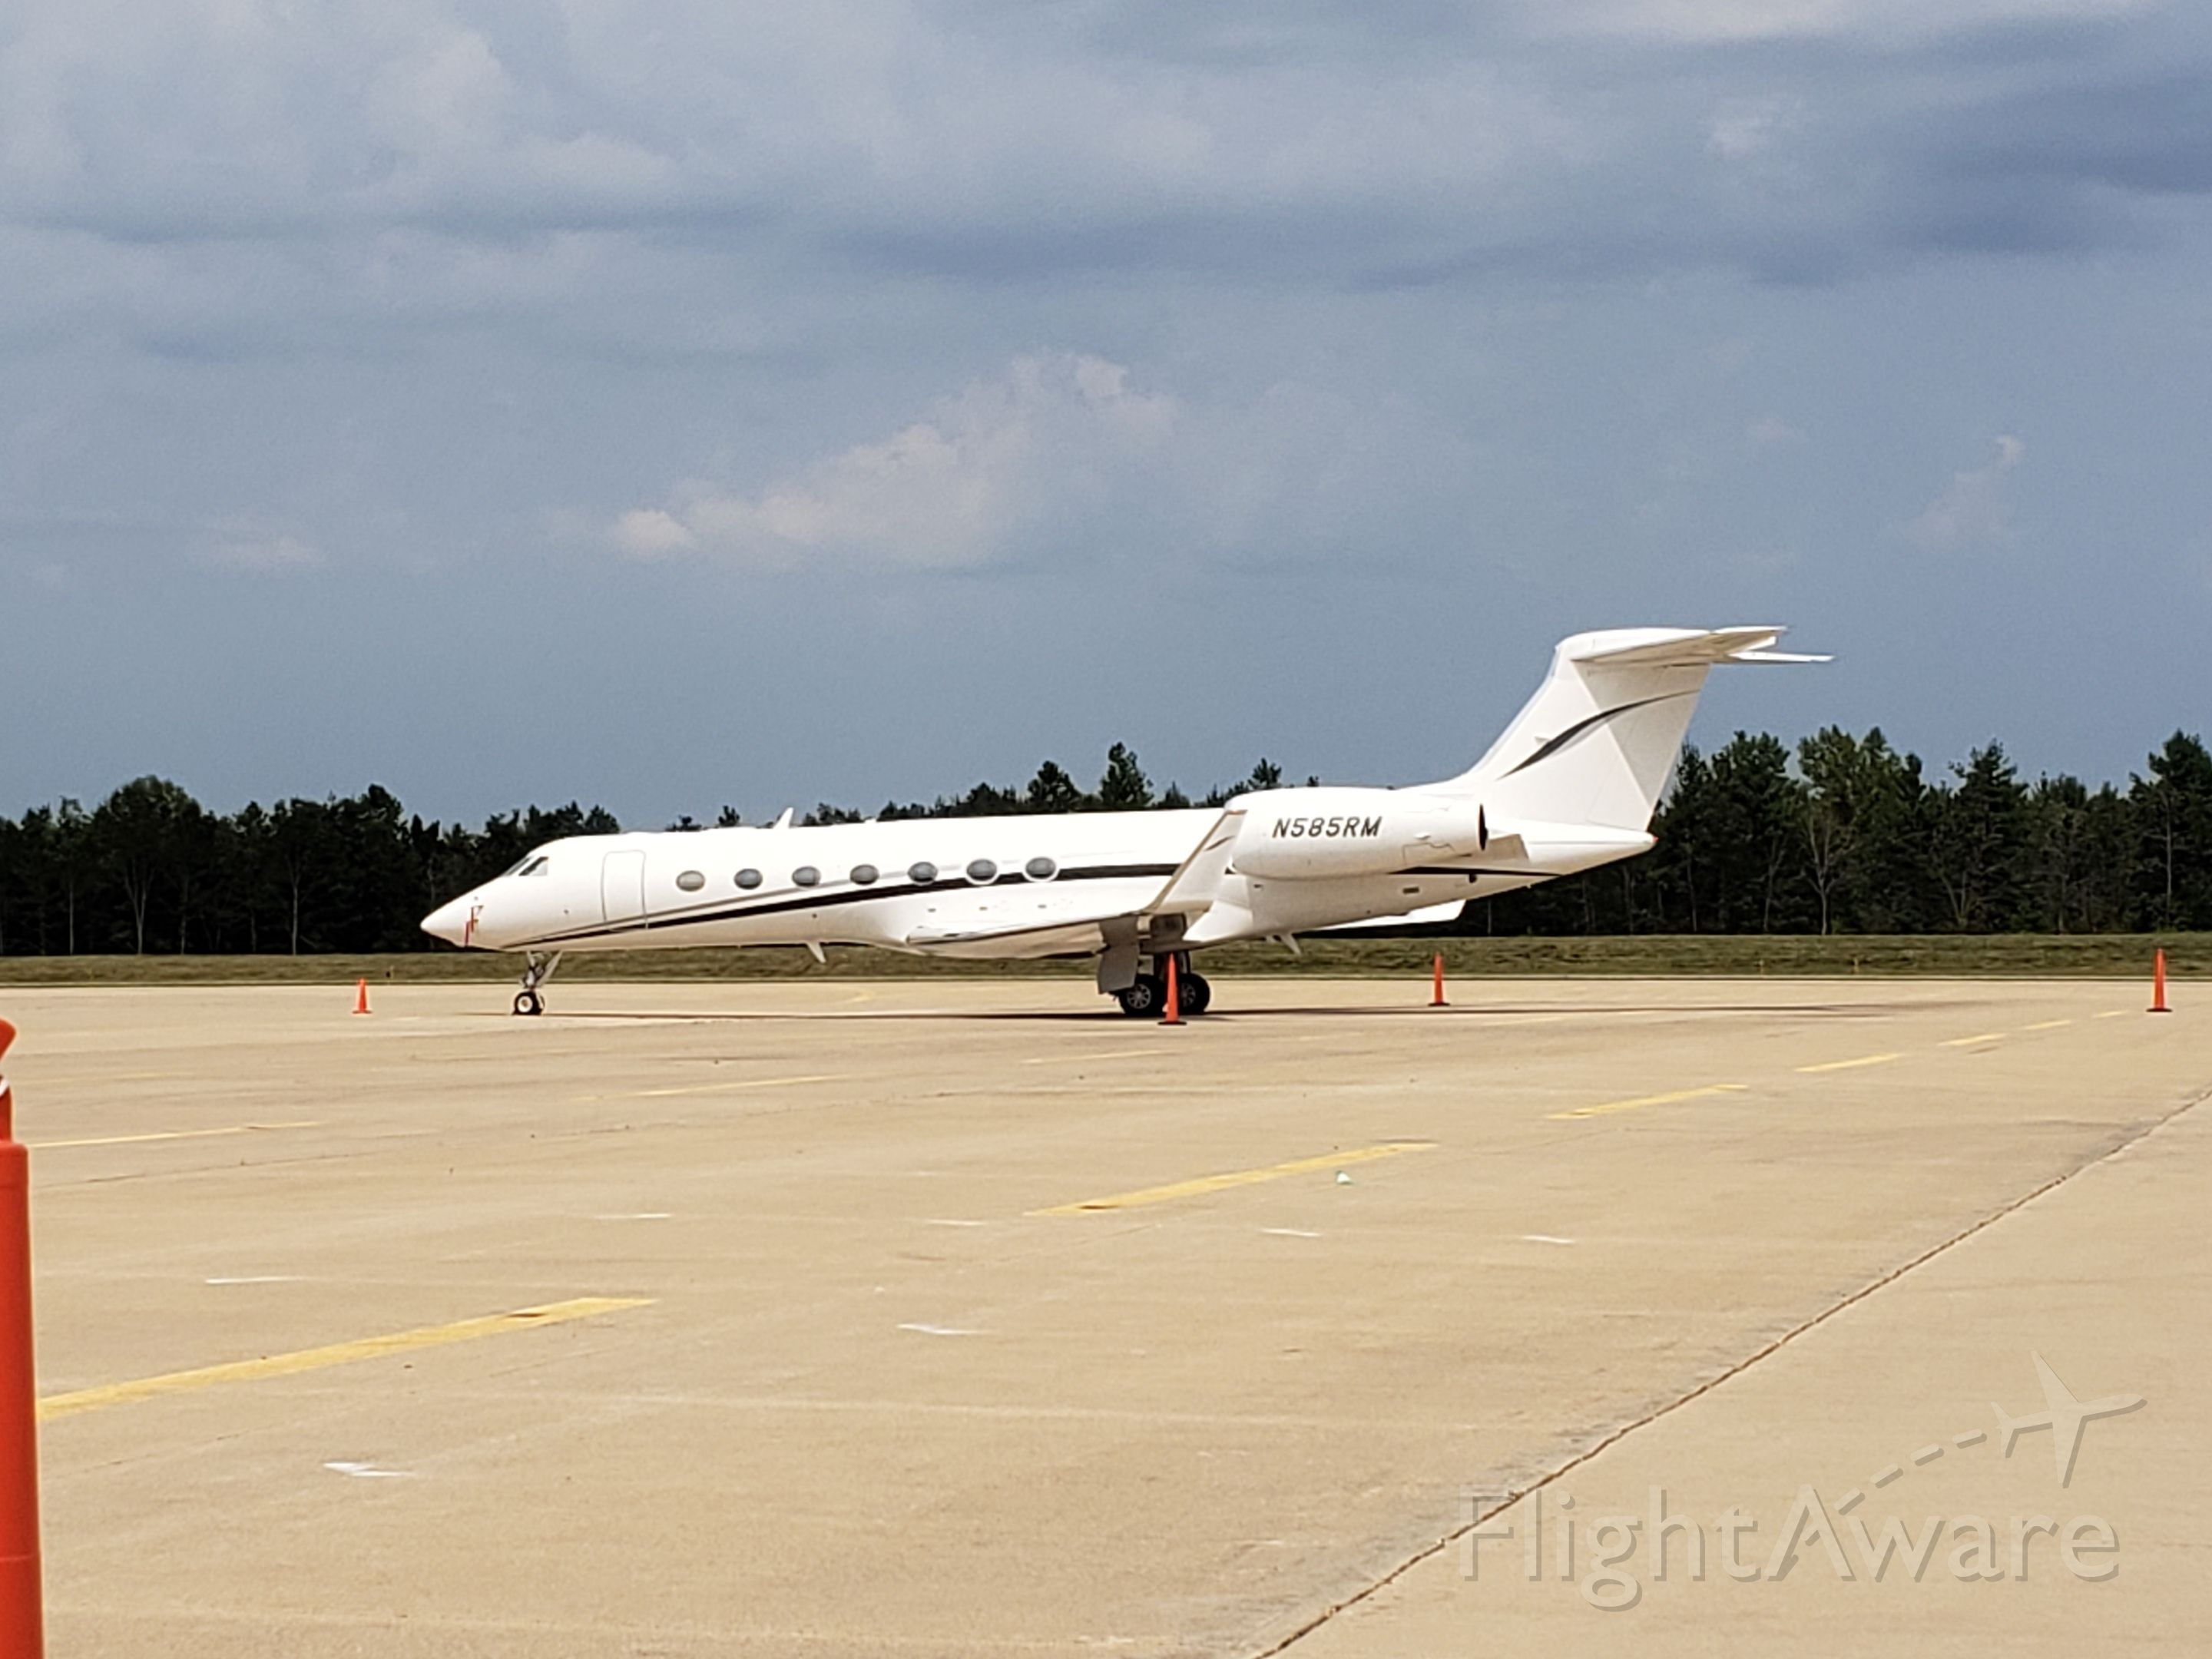 N585RM — - Bult Field, Monee, IL, USA. Rory in town for the PGA's BMW Championship at Olympia Fields C.C.